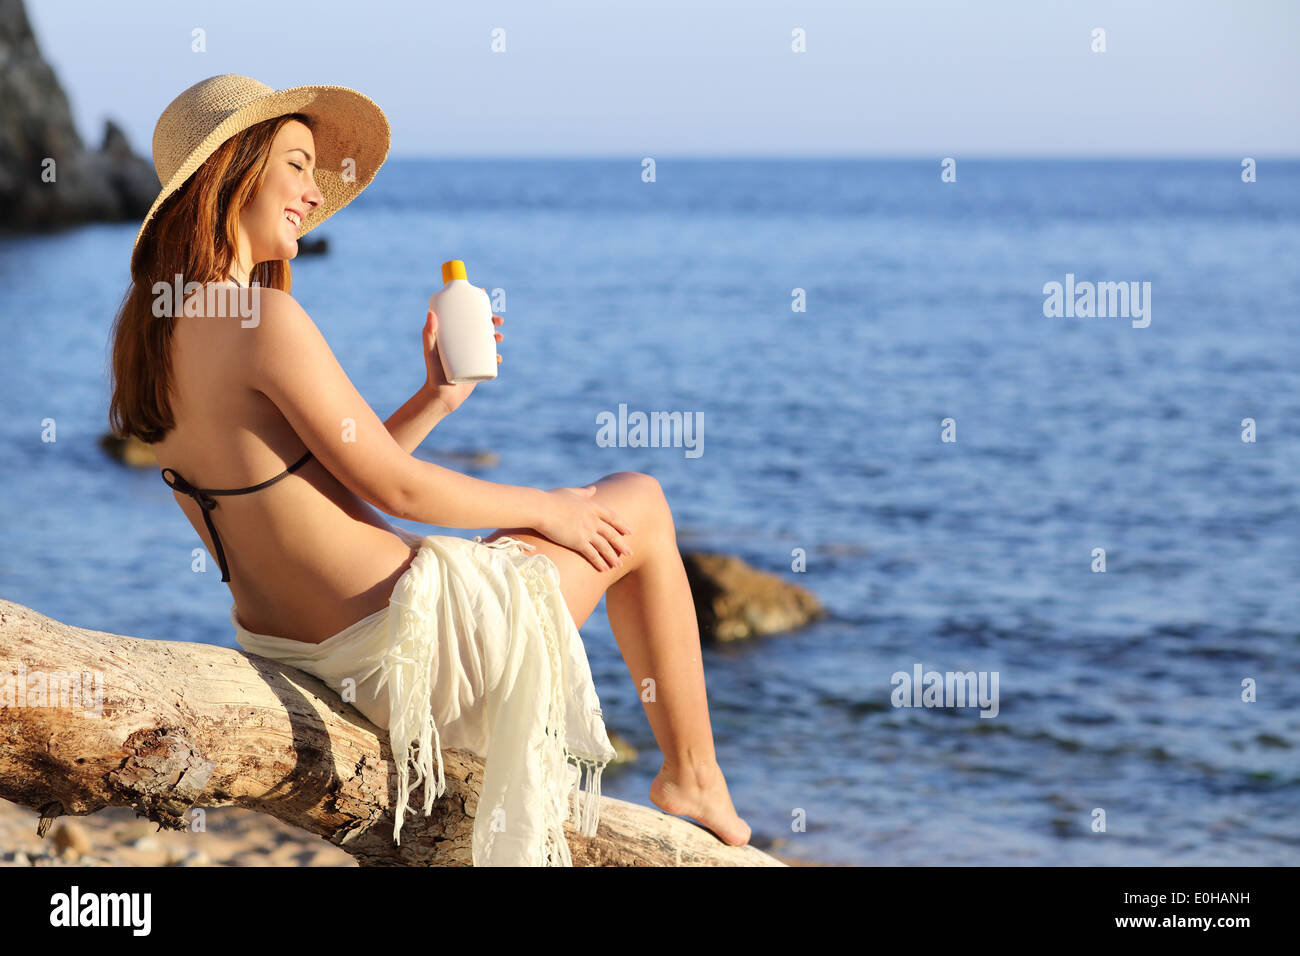 Woman on holidays on the beach applying sunscreen protection on leg with the horizon in the background - Stock Image